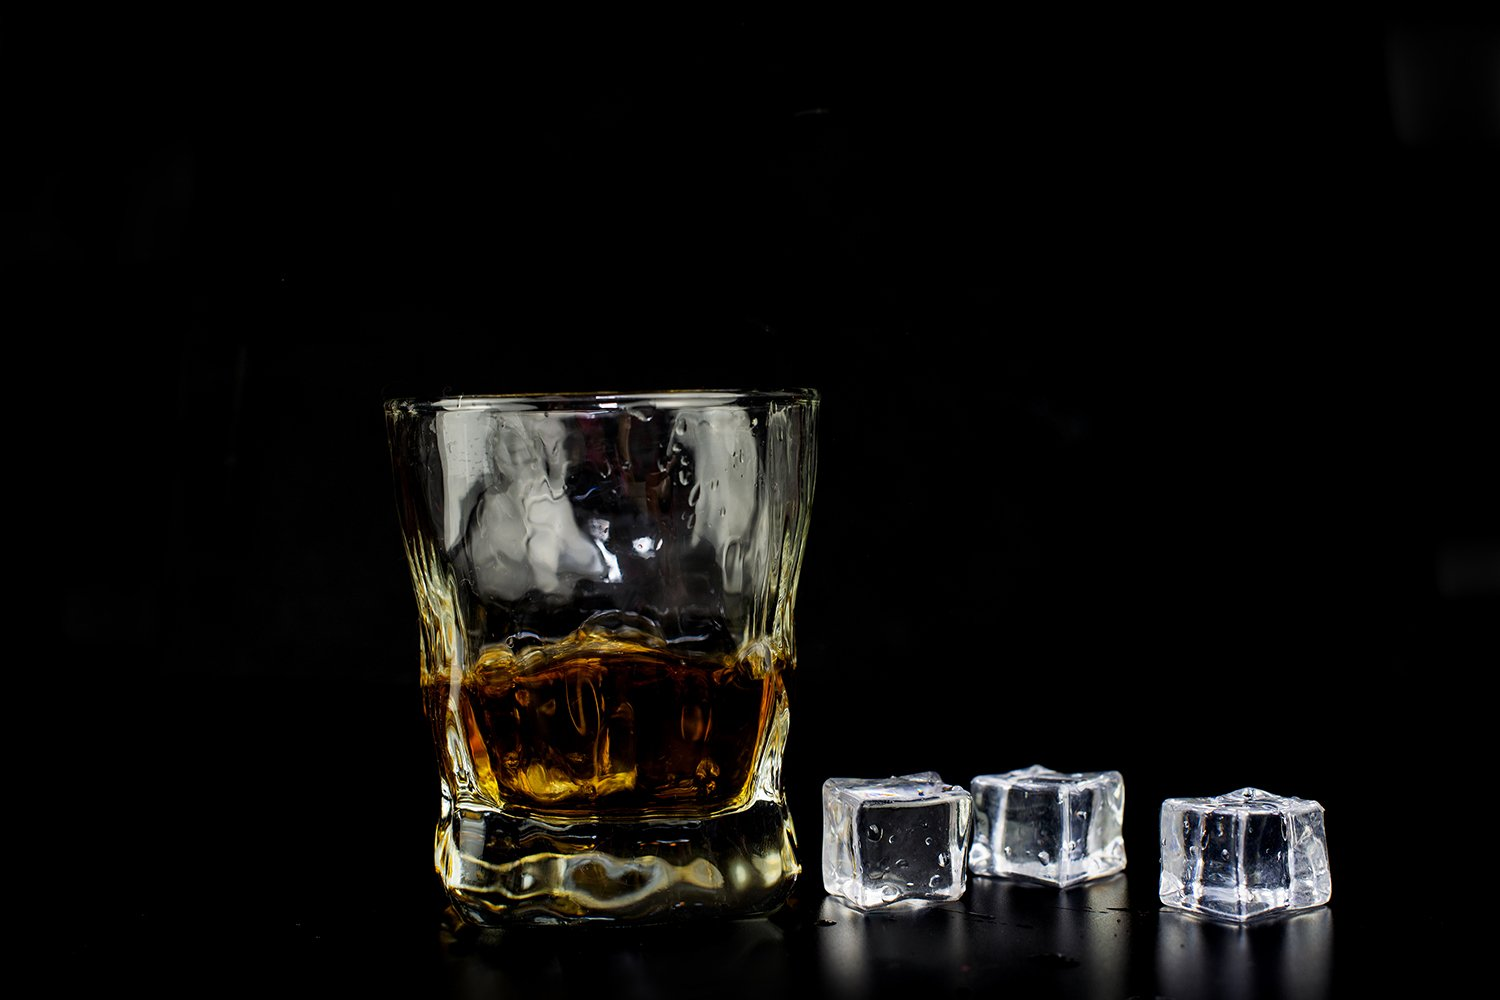 alcohol drink whiskey with ice cubes on a black background example image 1